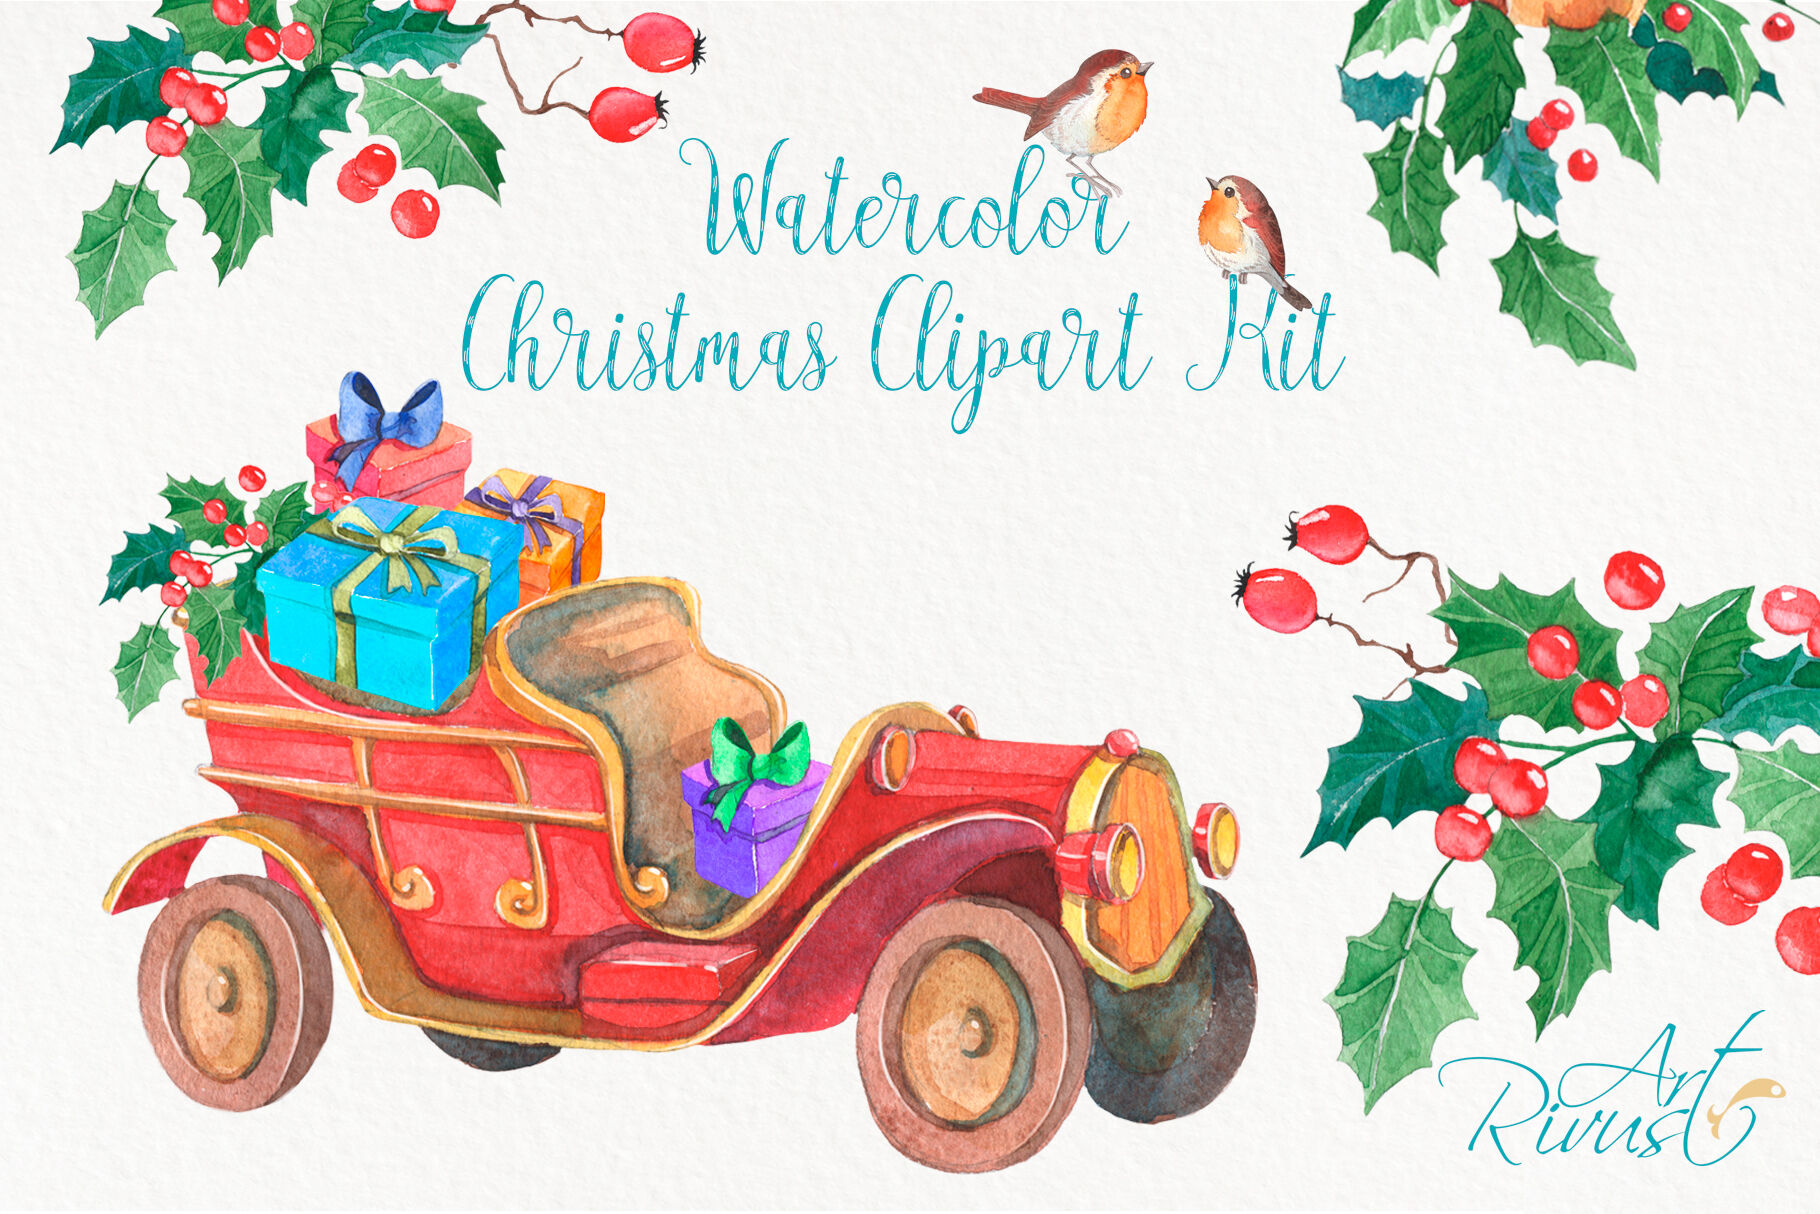 Merry Christmas Images Clip Art.Christmas Truck Png Clipart Merry Christmas Tree Watercolor